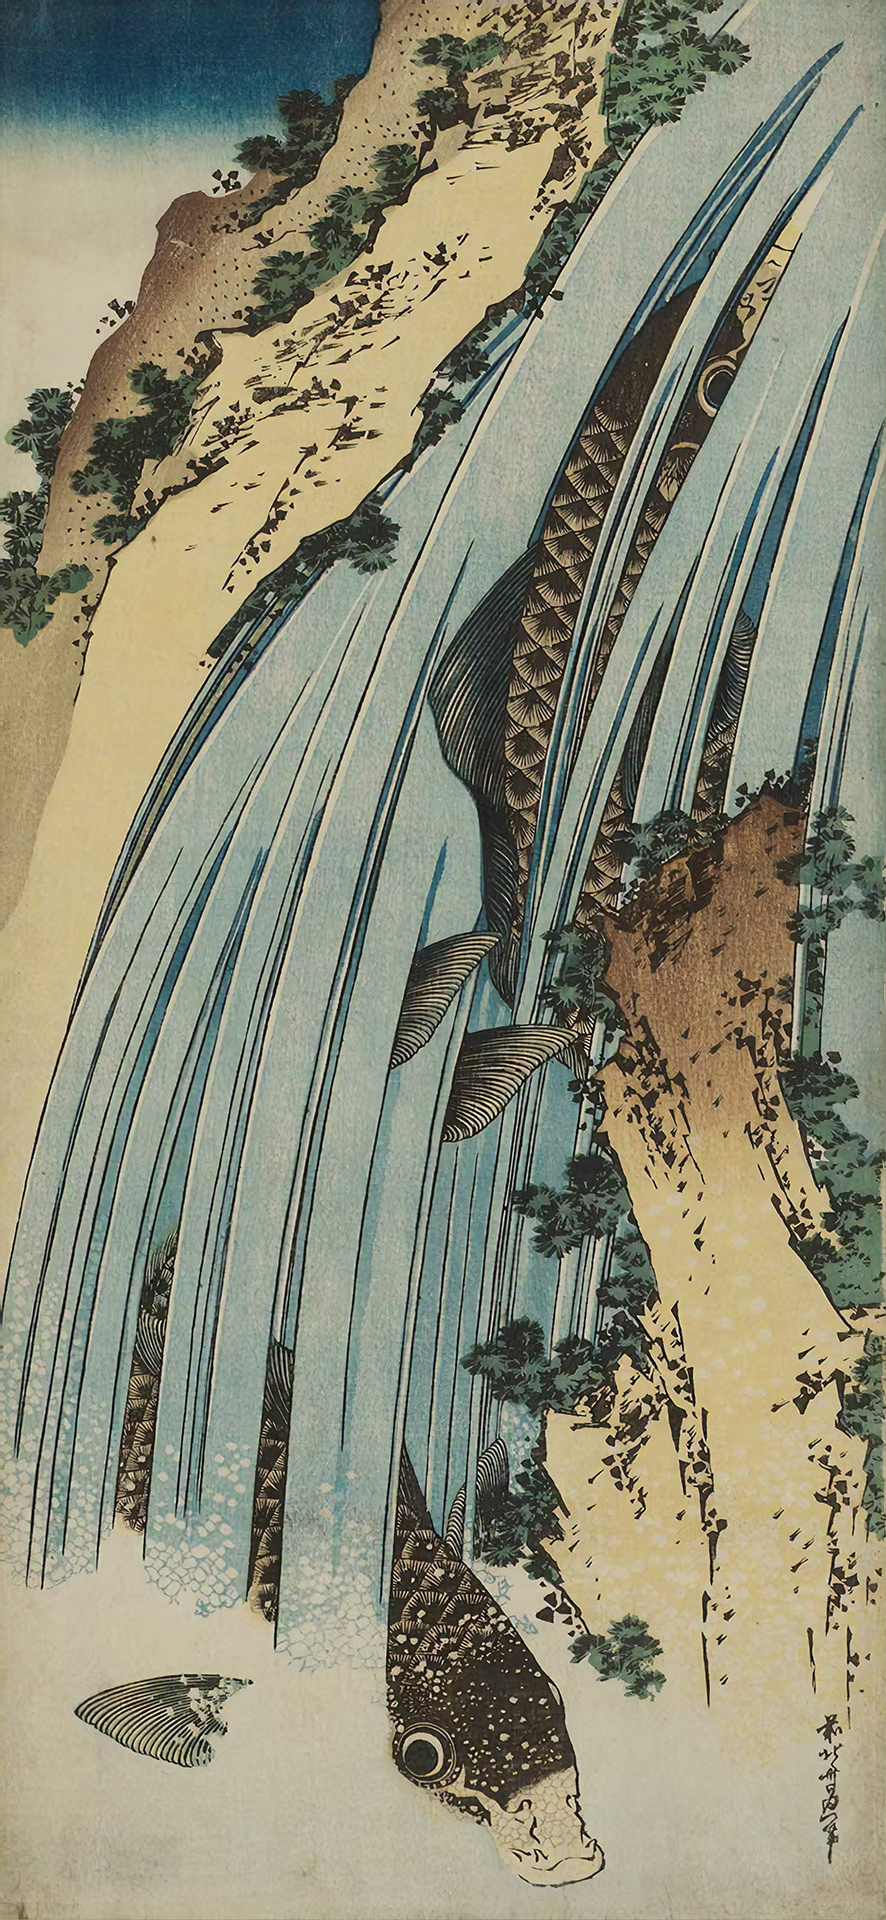 Two Carp in Waterfall (1834) by Hokusai